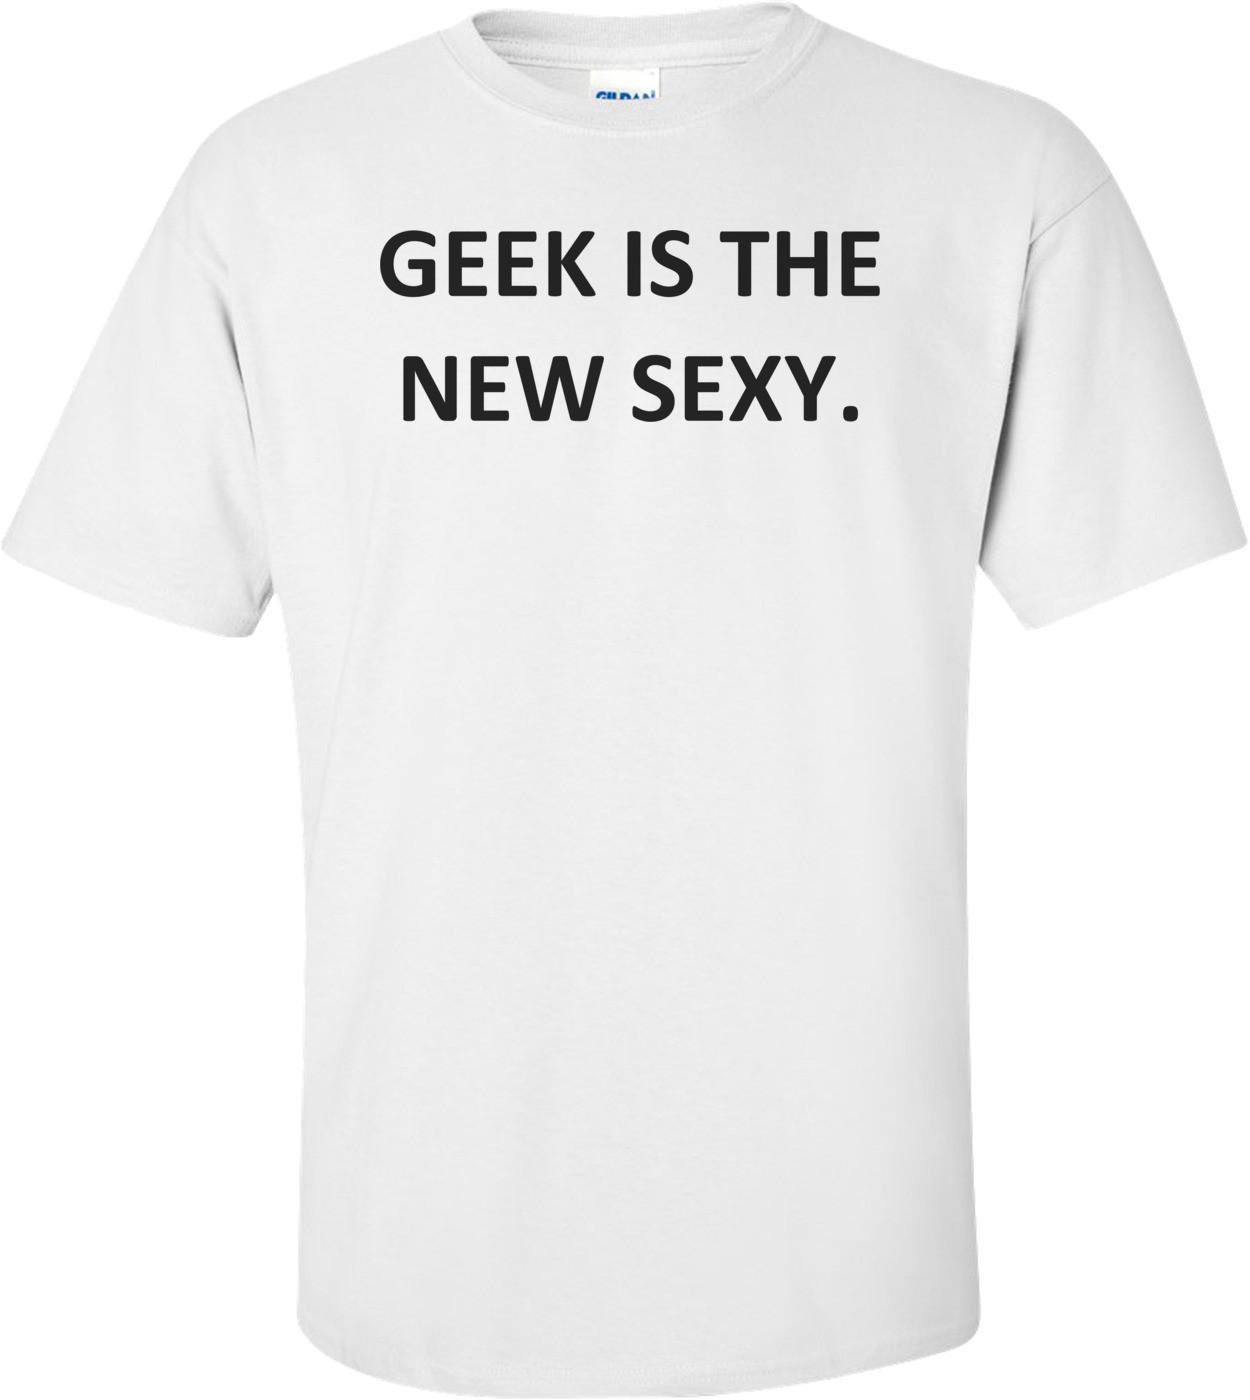 GEEK IS THE NEW SEXY. Shirt